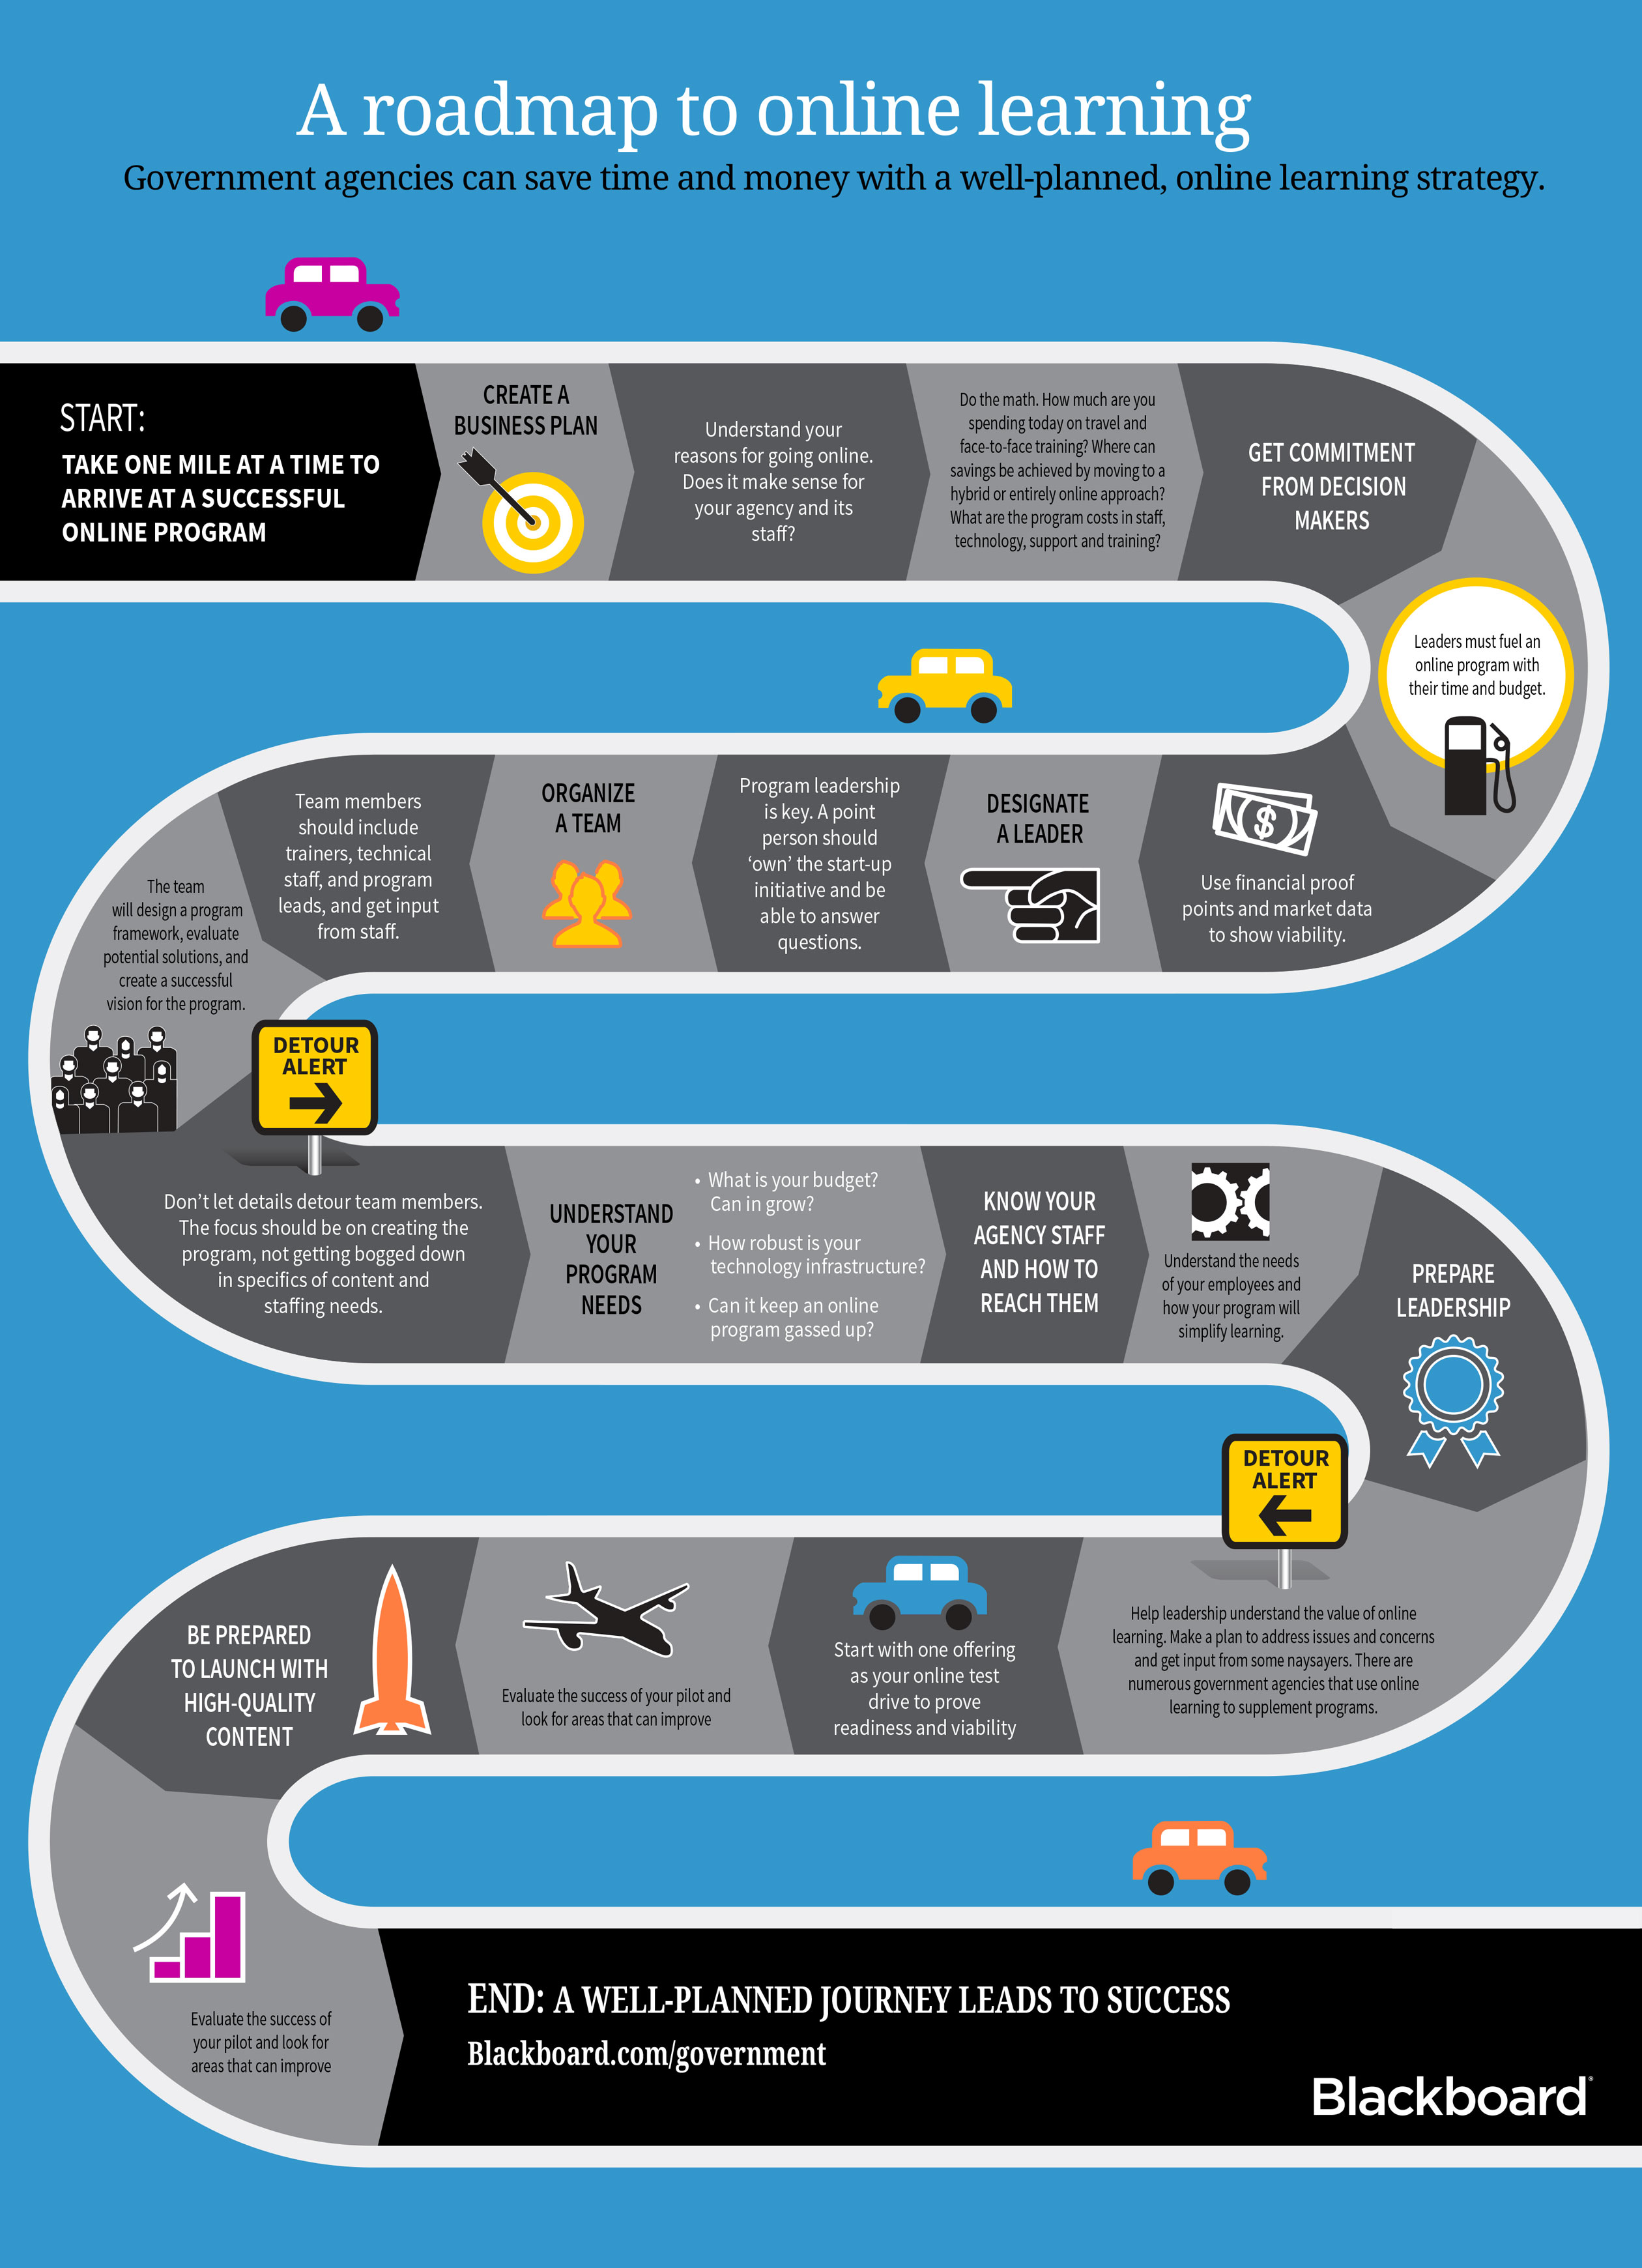 Infographic of roadmap to online learning for government